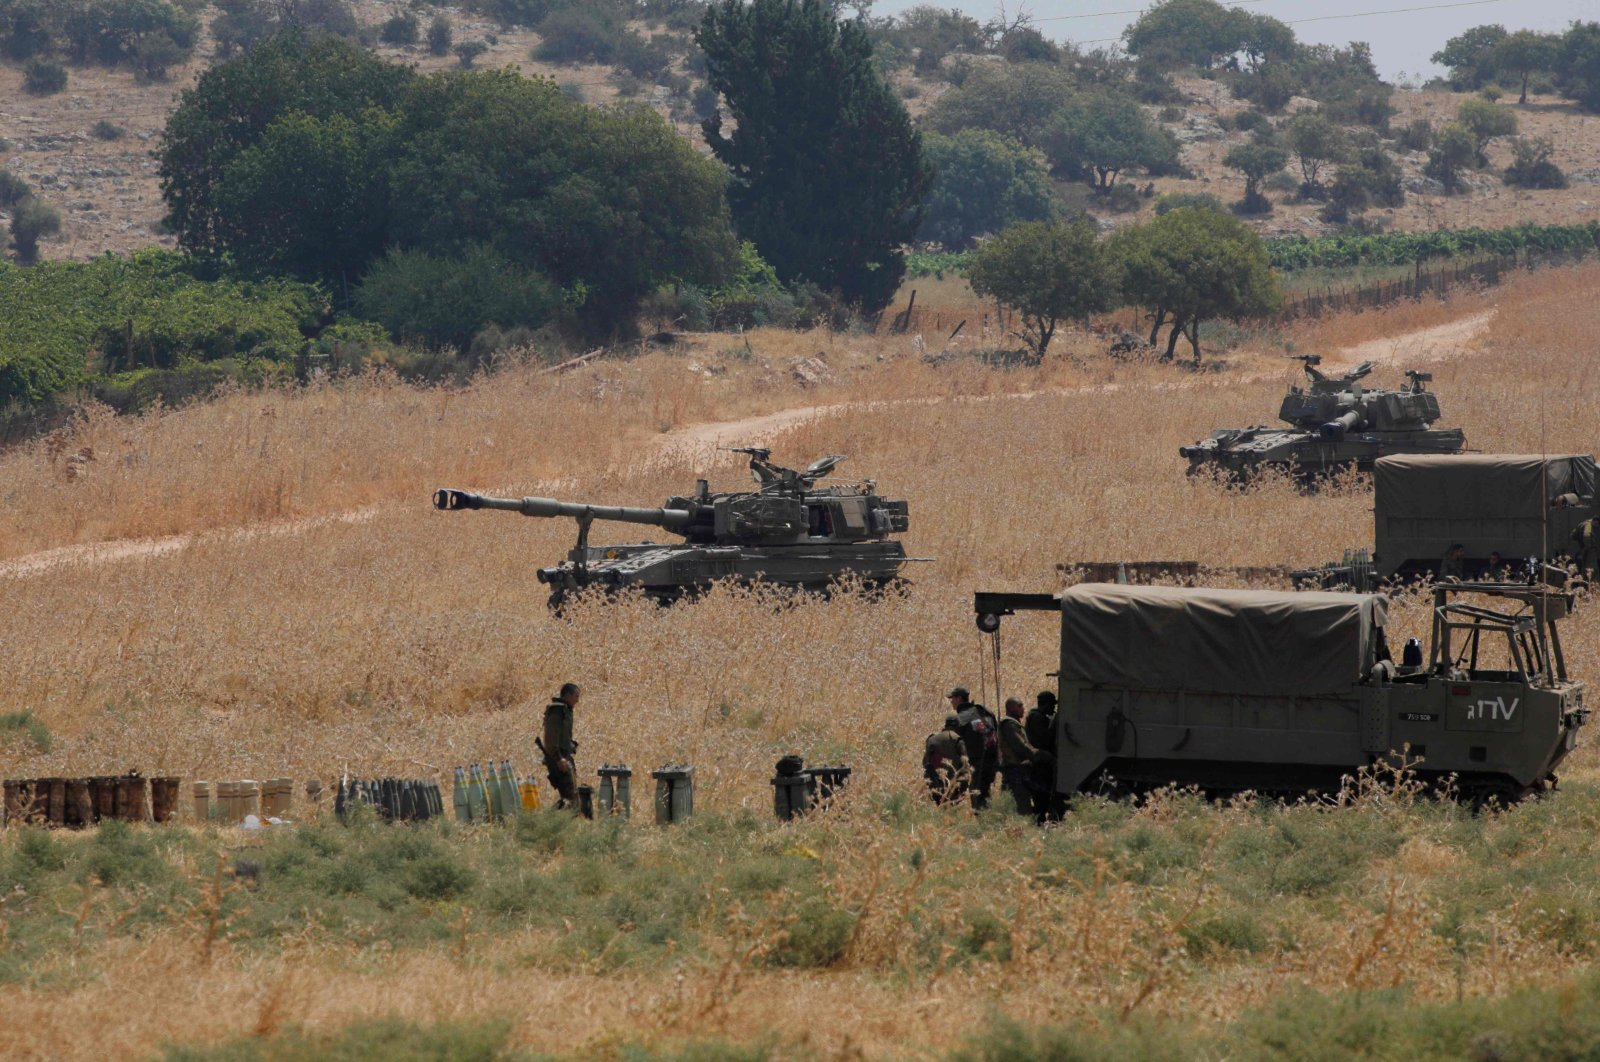 Armored vehicles and 155 mm self-propelled howitzers are deployed in the Upper Galilee in northern Israel on the border with Lebanon on July 27, 2020. (AFP Photo)